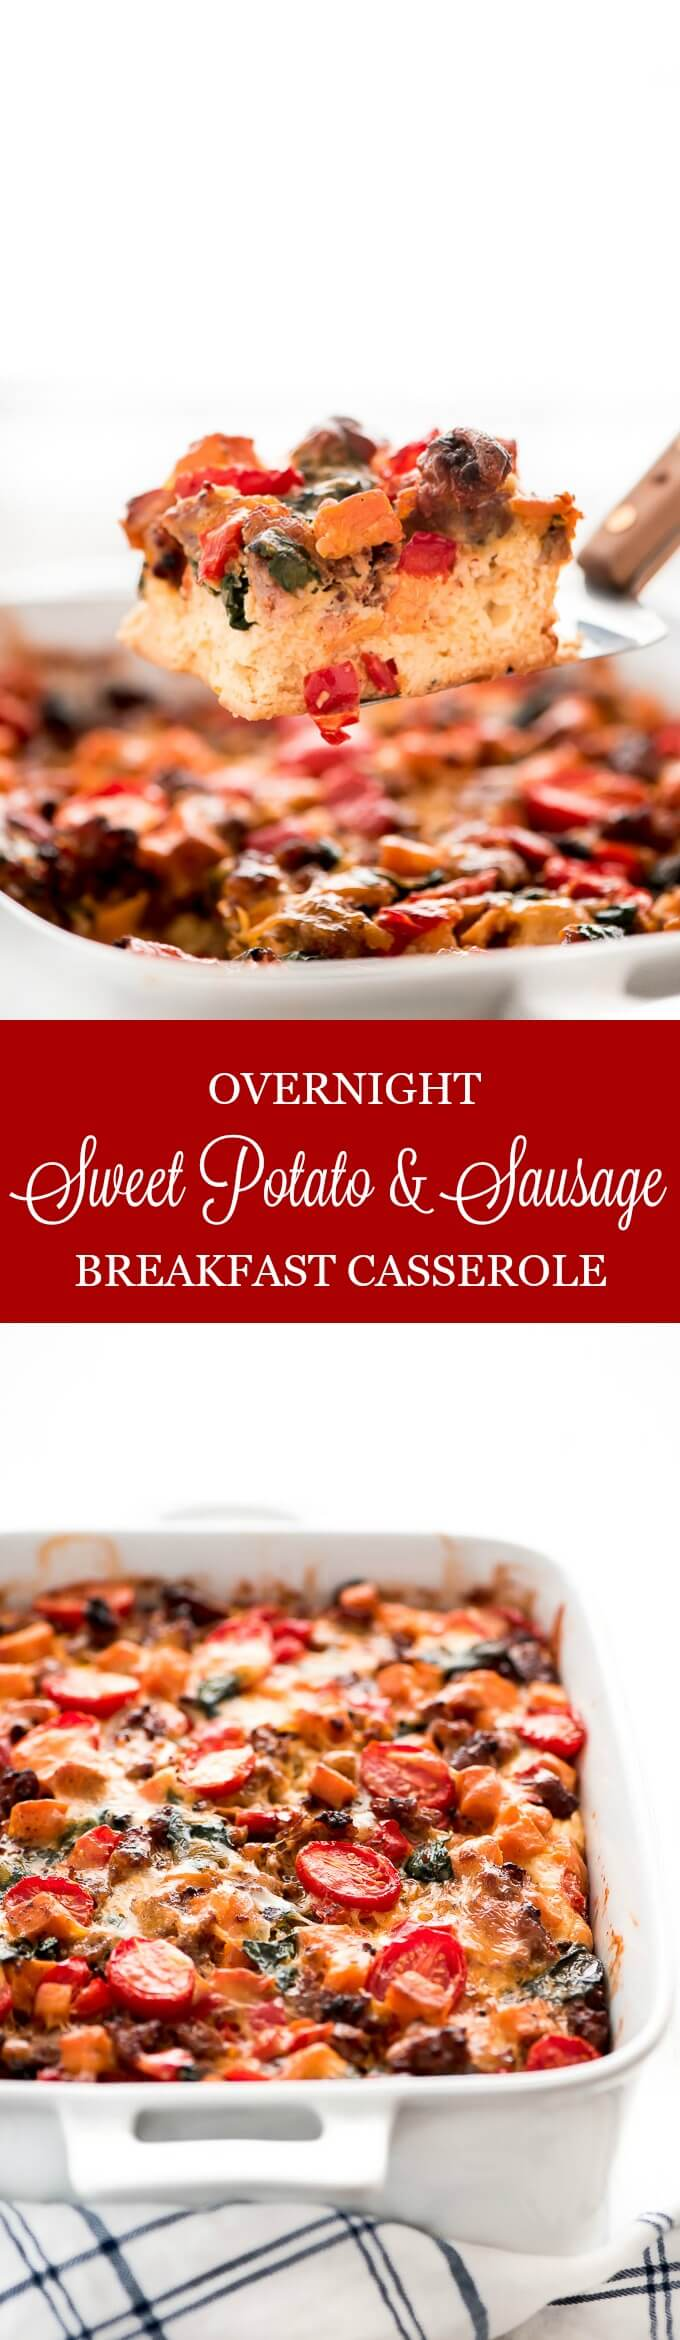 Prepare this <strong>Overnight Sweet Potato & Sausage Breakfast Casserole</strong> at night and wake up to a warm, delicious, and healthy breakfast the whole family will love!